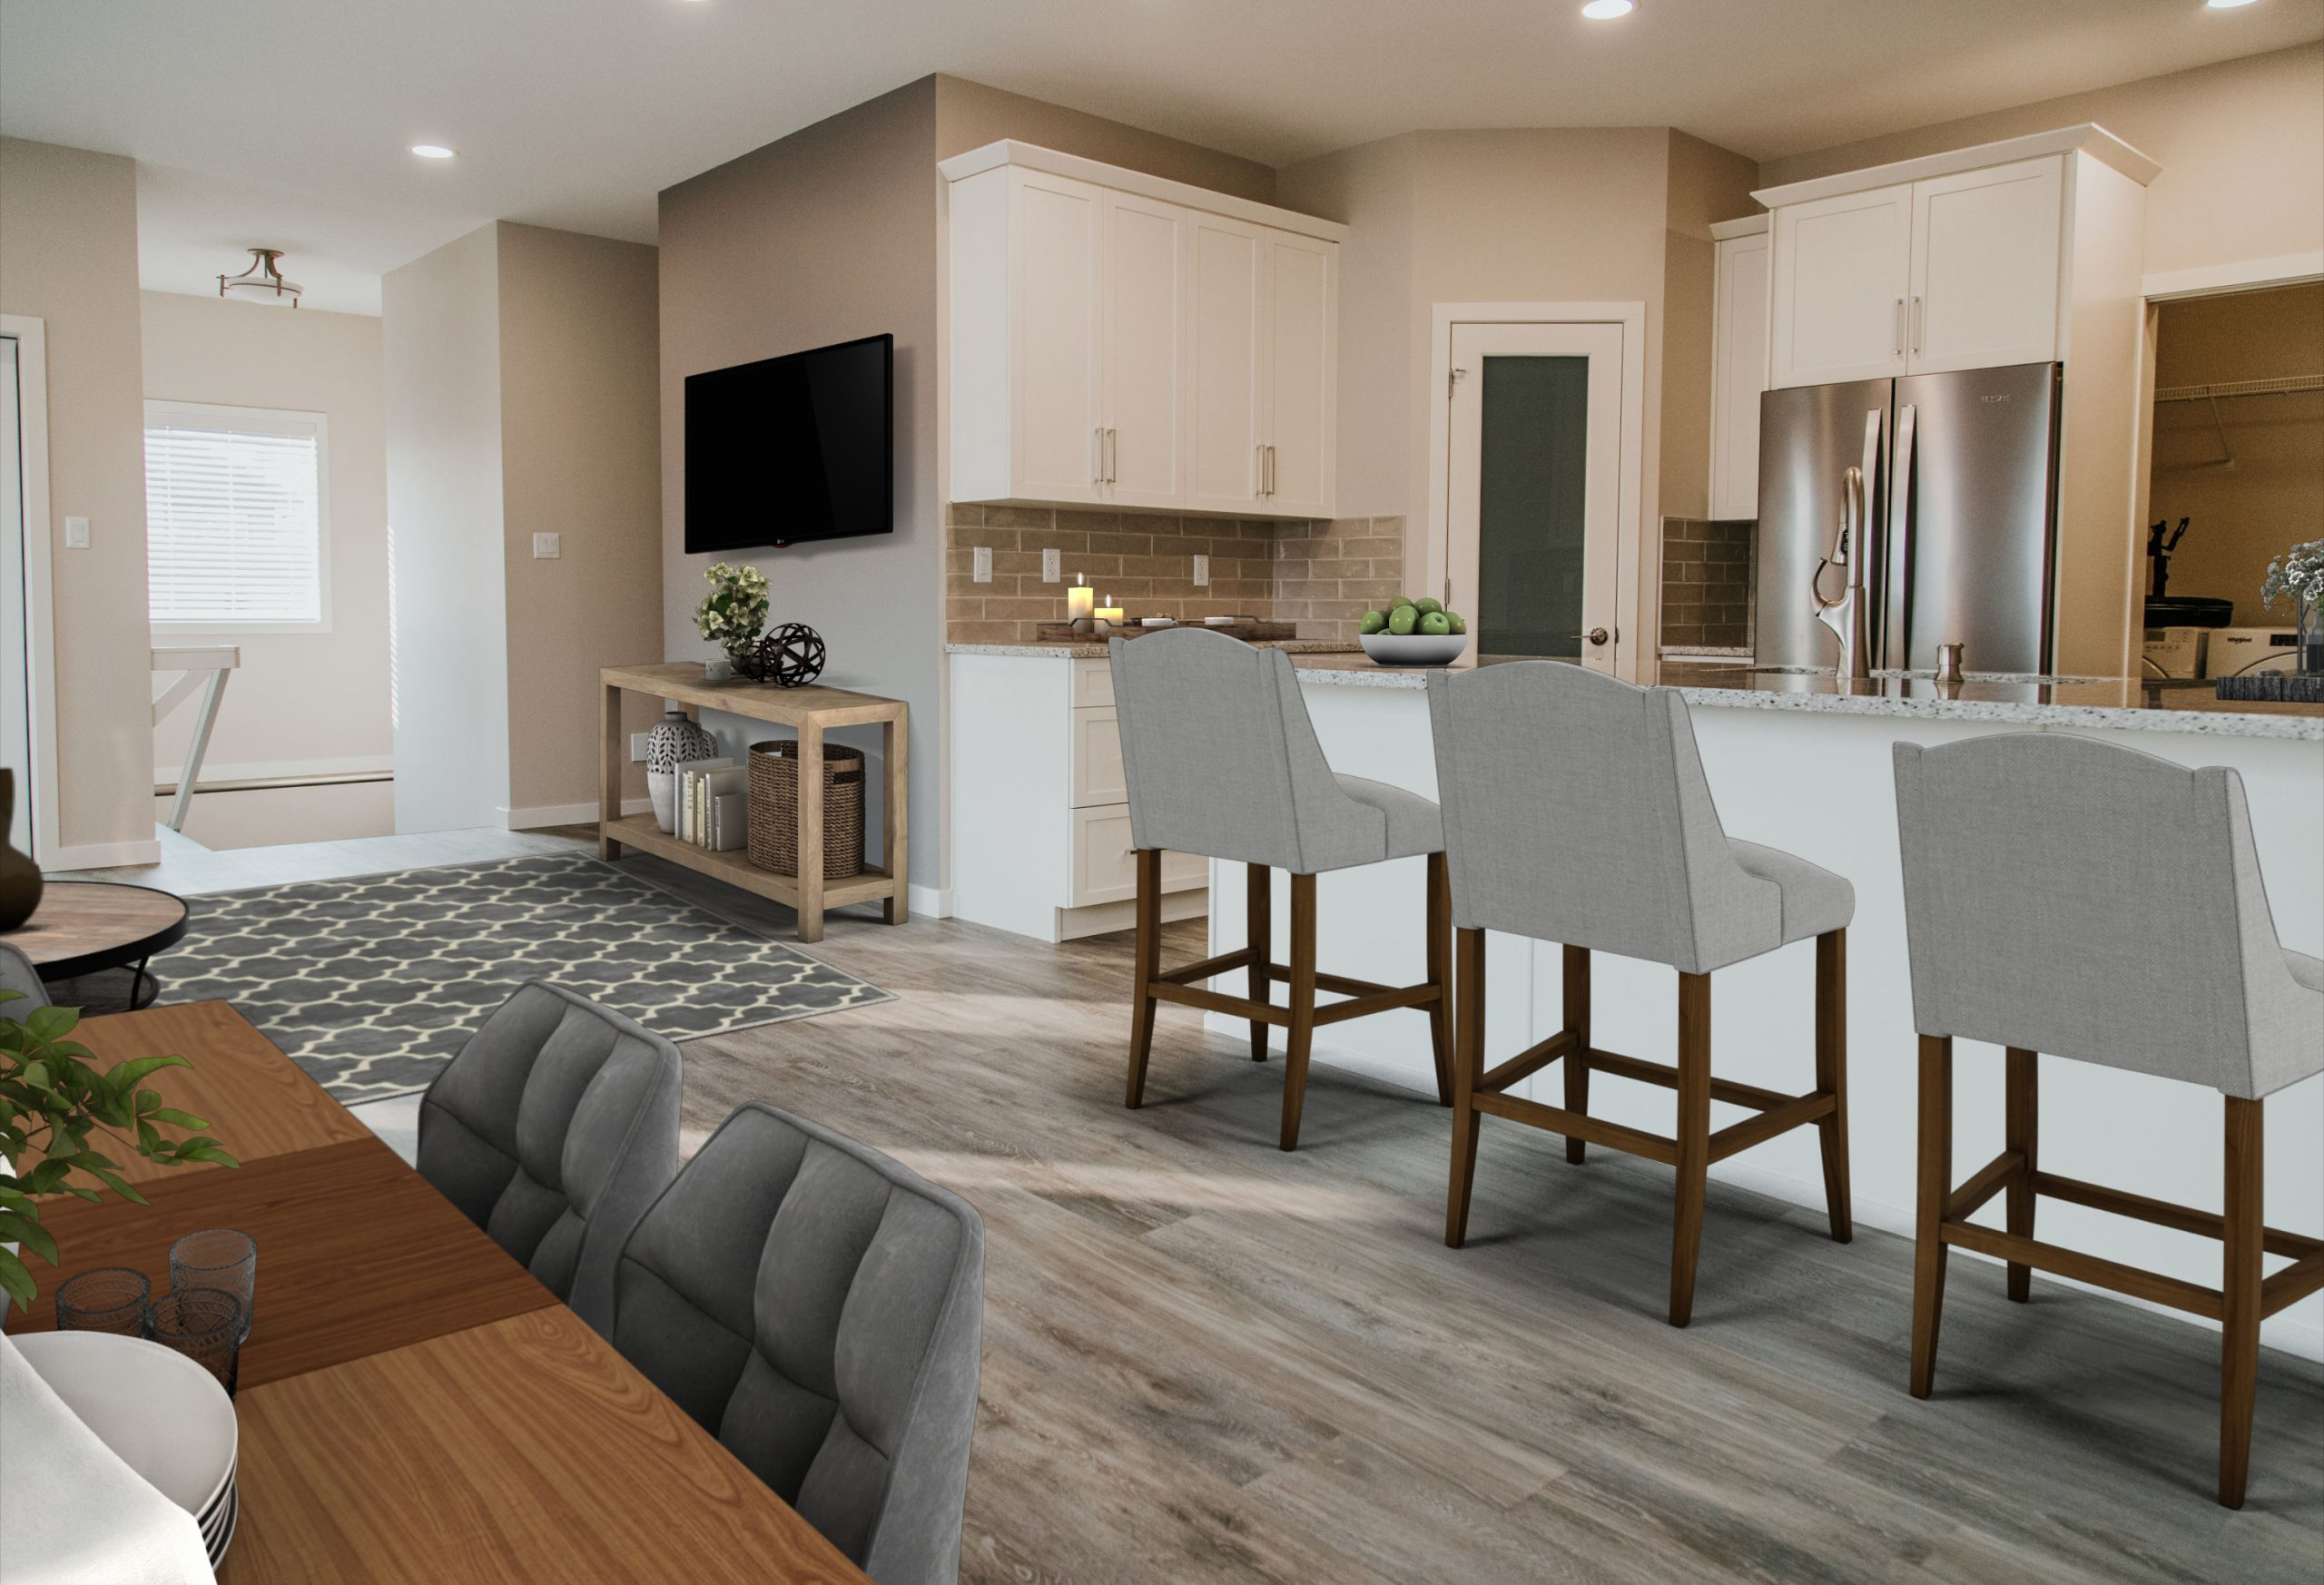 Your Home Your Way With Endless Customization Options